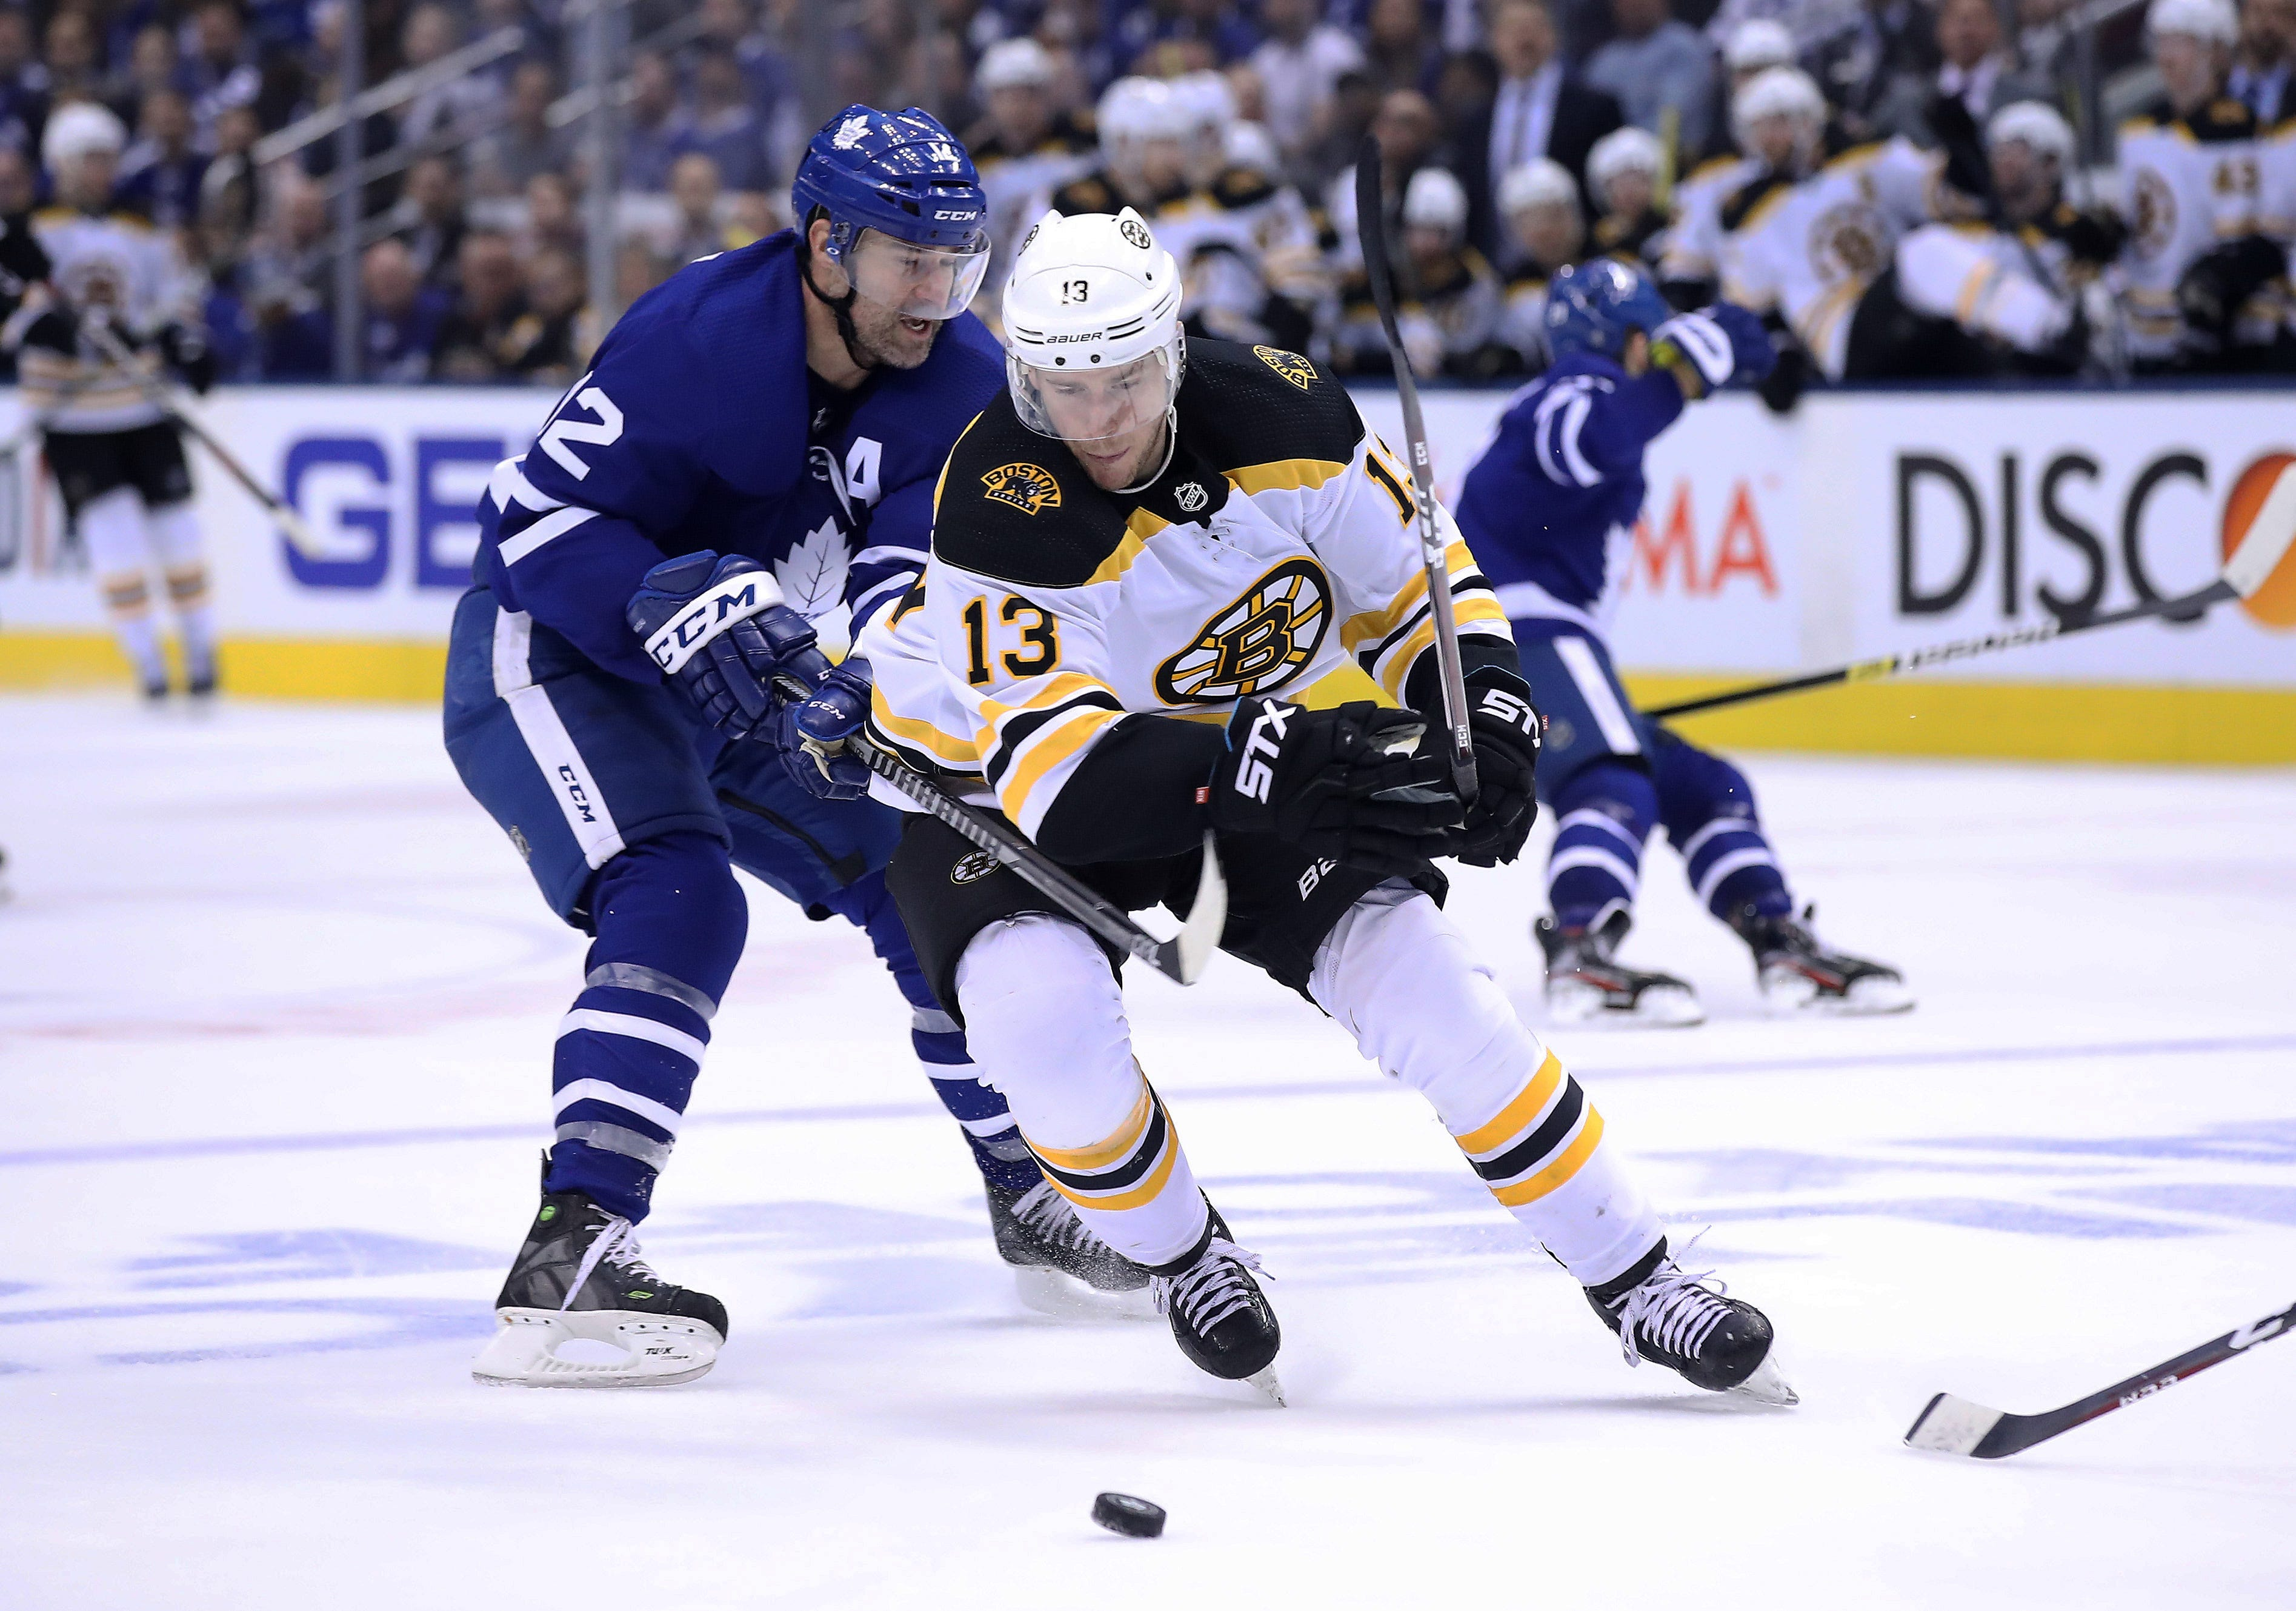 Nhl playoff odds betting craps how to use betting trends college